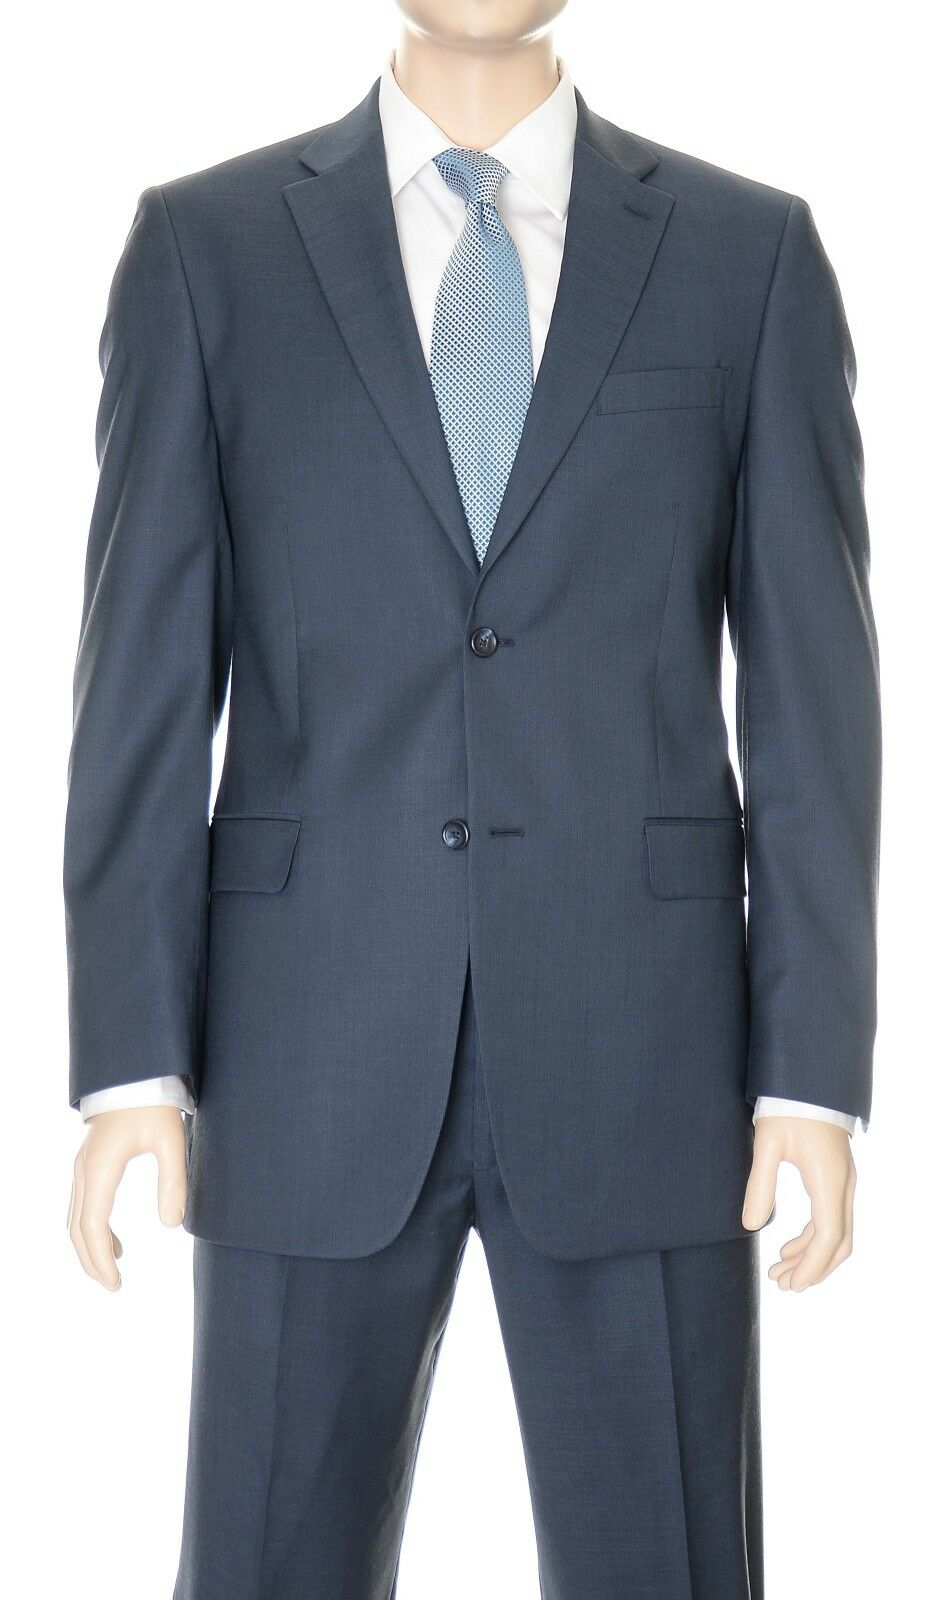 650 Jones New York Classic Fit Blau TextuROT Two Button 100% WoolSuit 36S 29.5W